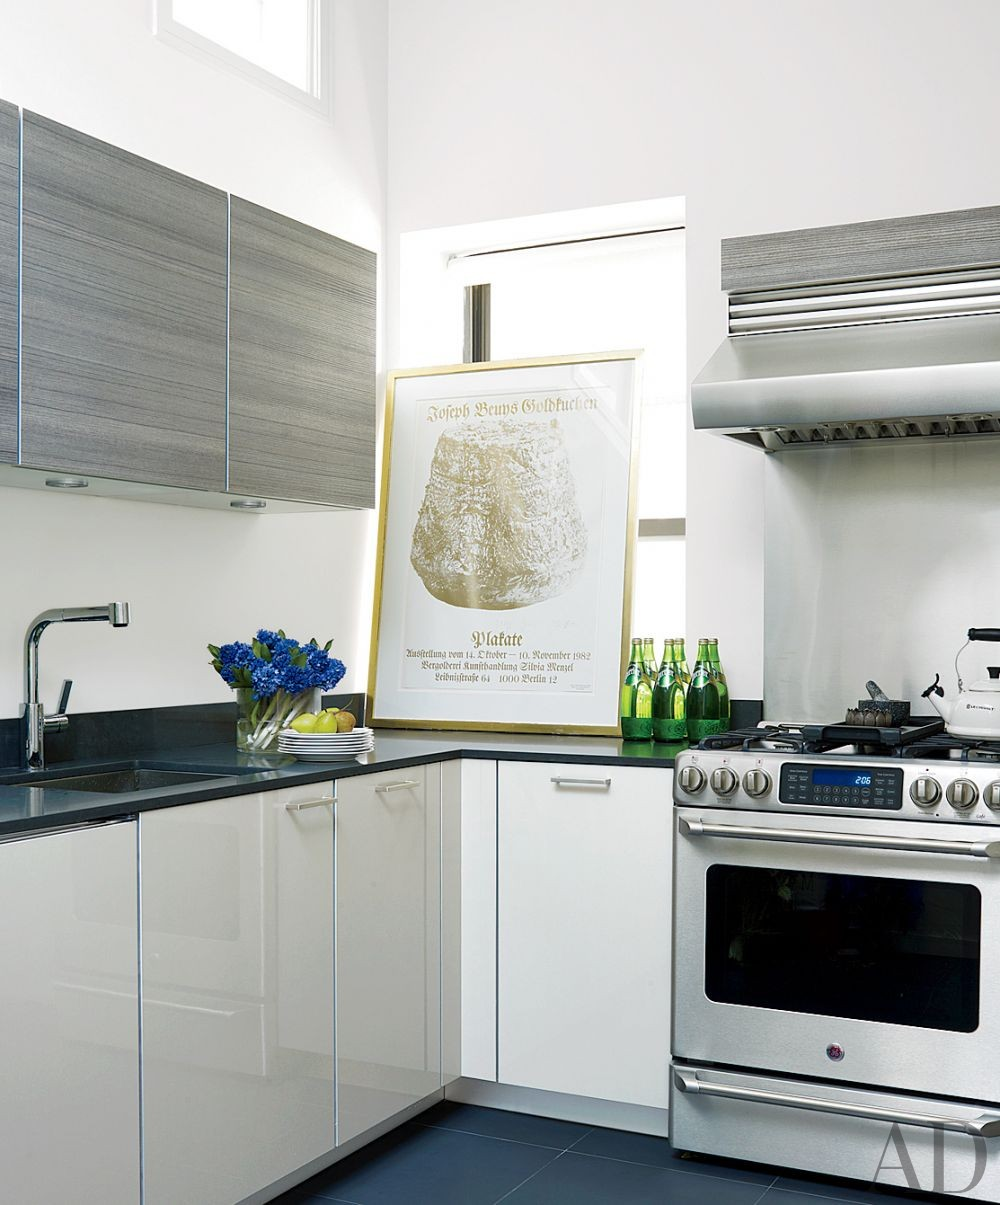 Contemporary Kitchen By Milly De Cabrol Ltd And Riste Rd Keating By Architectural Digest Ad